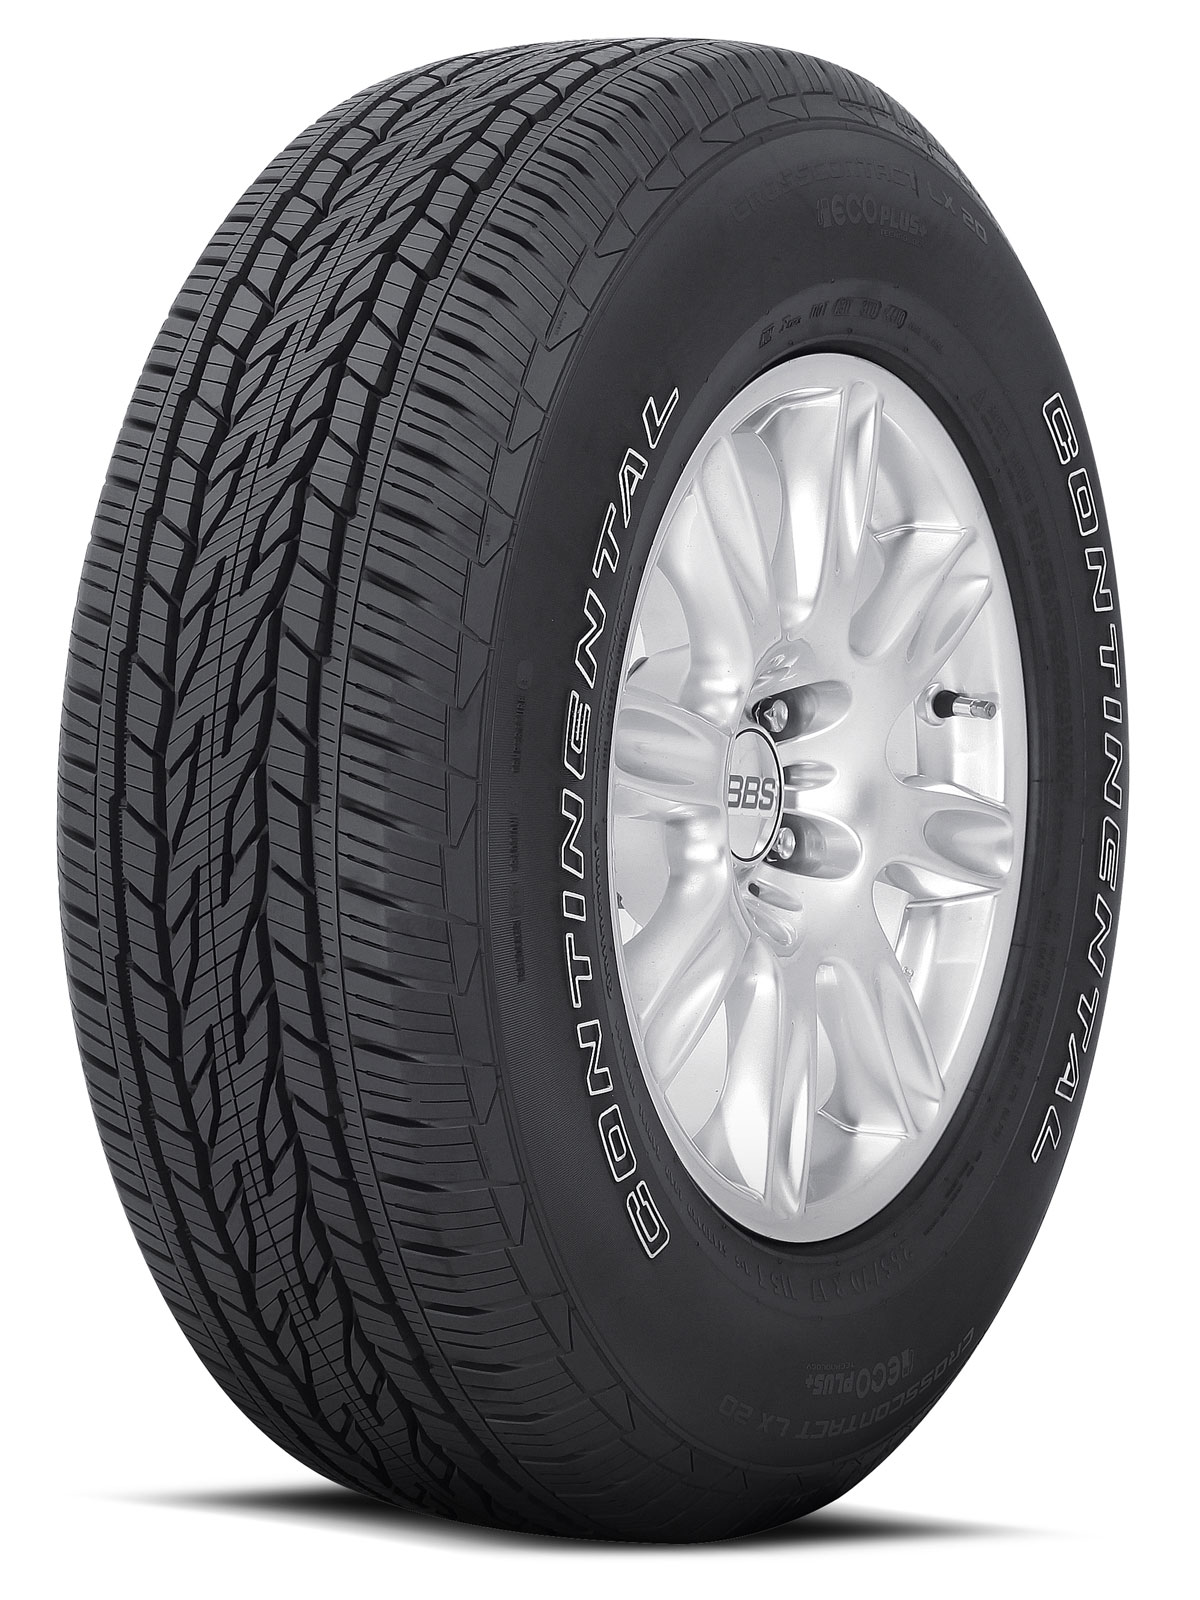 Continental Tires CrossContact LX20 With Ecoplus Technology